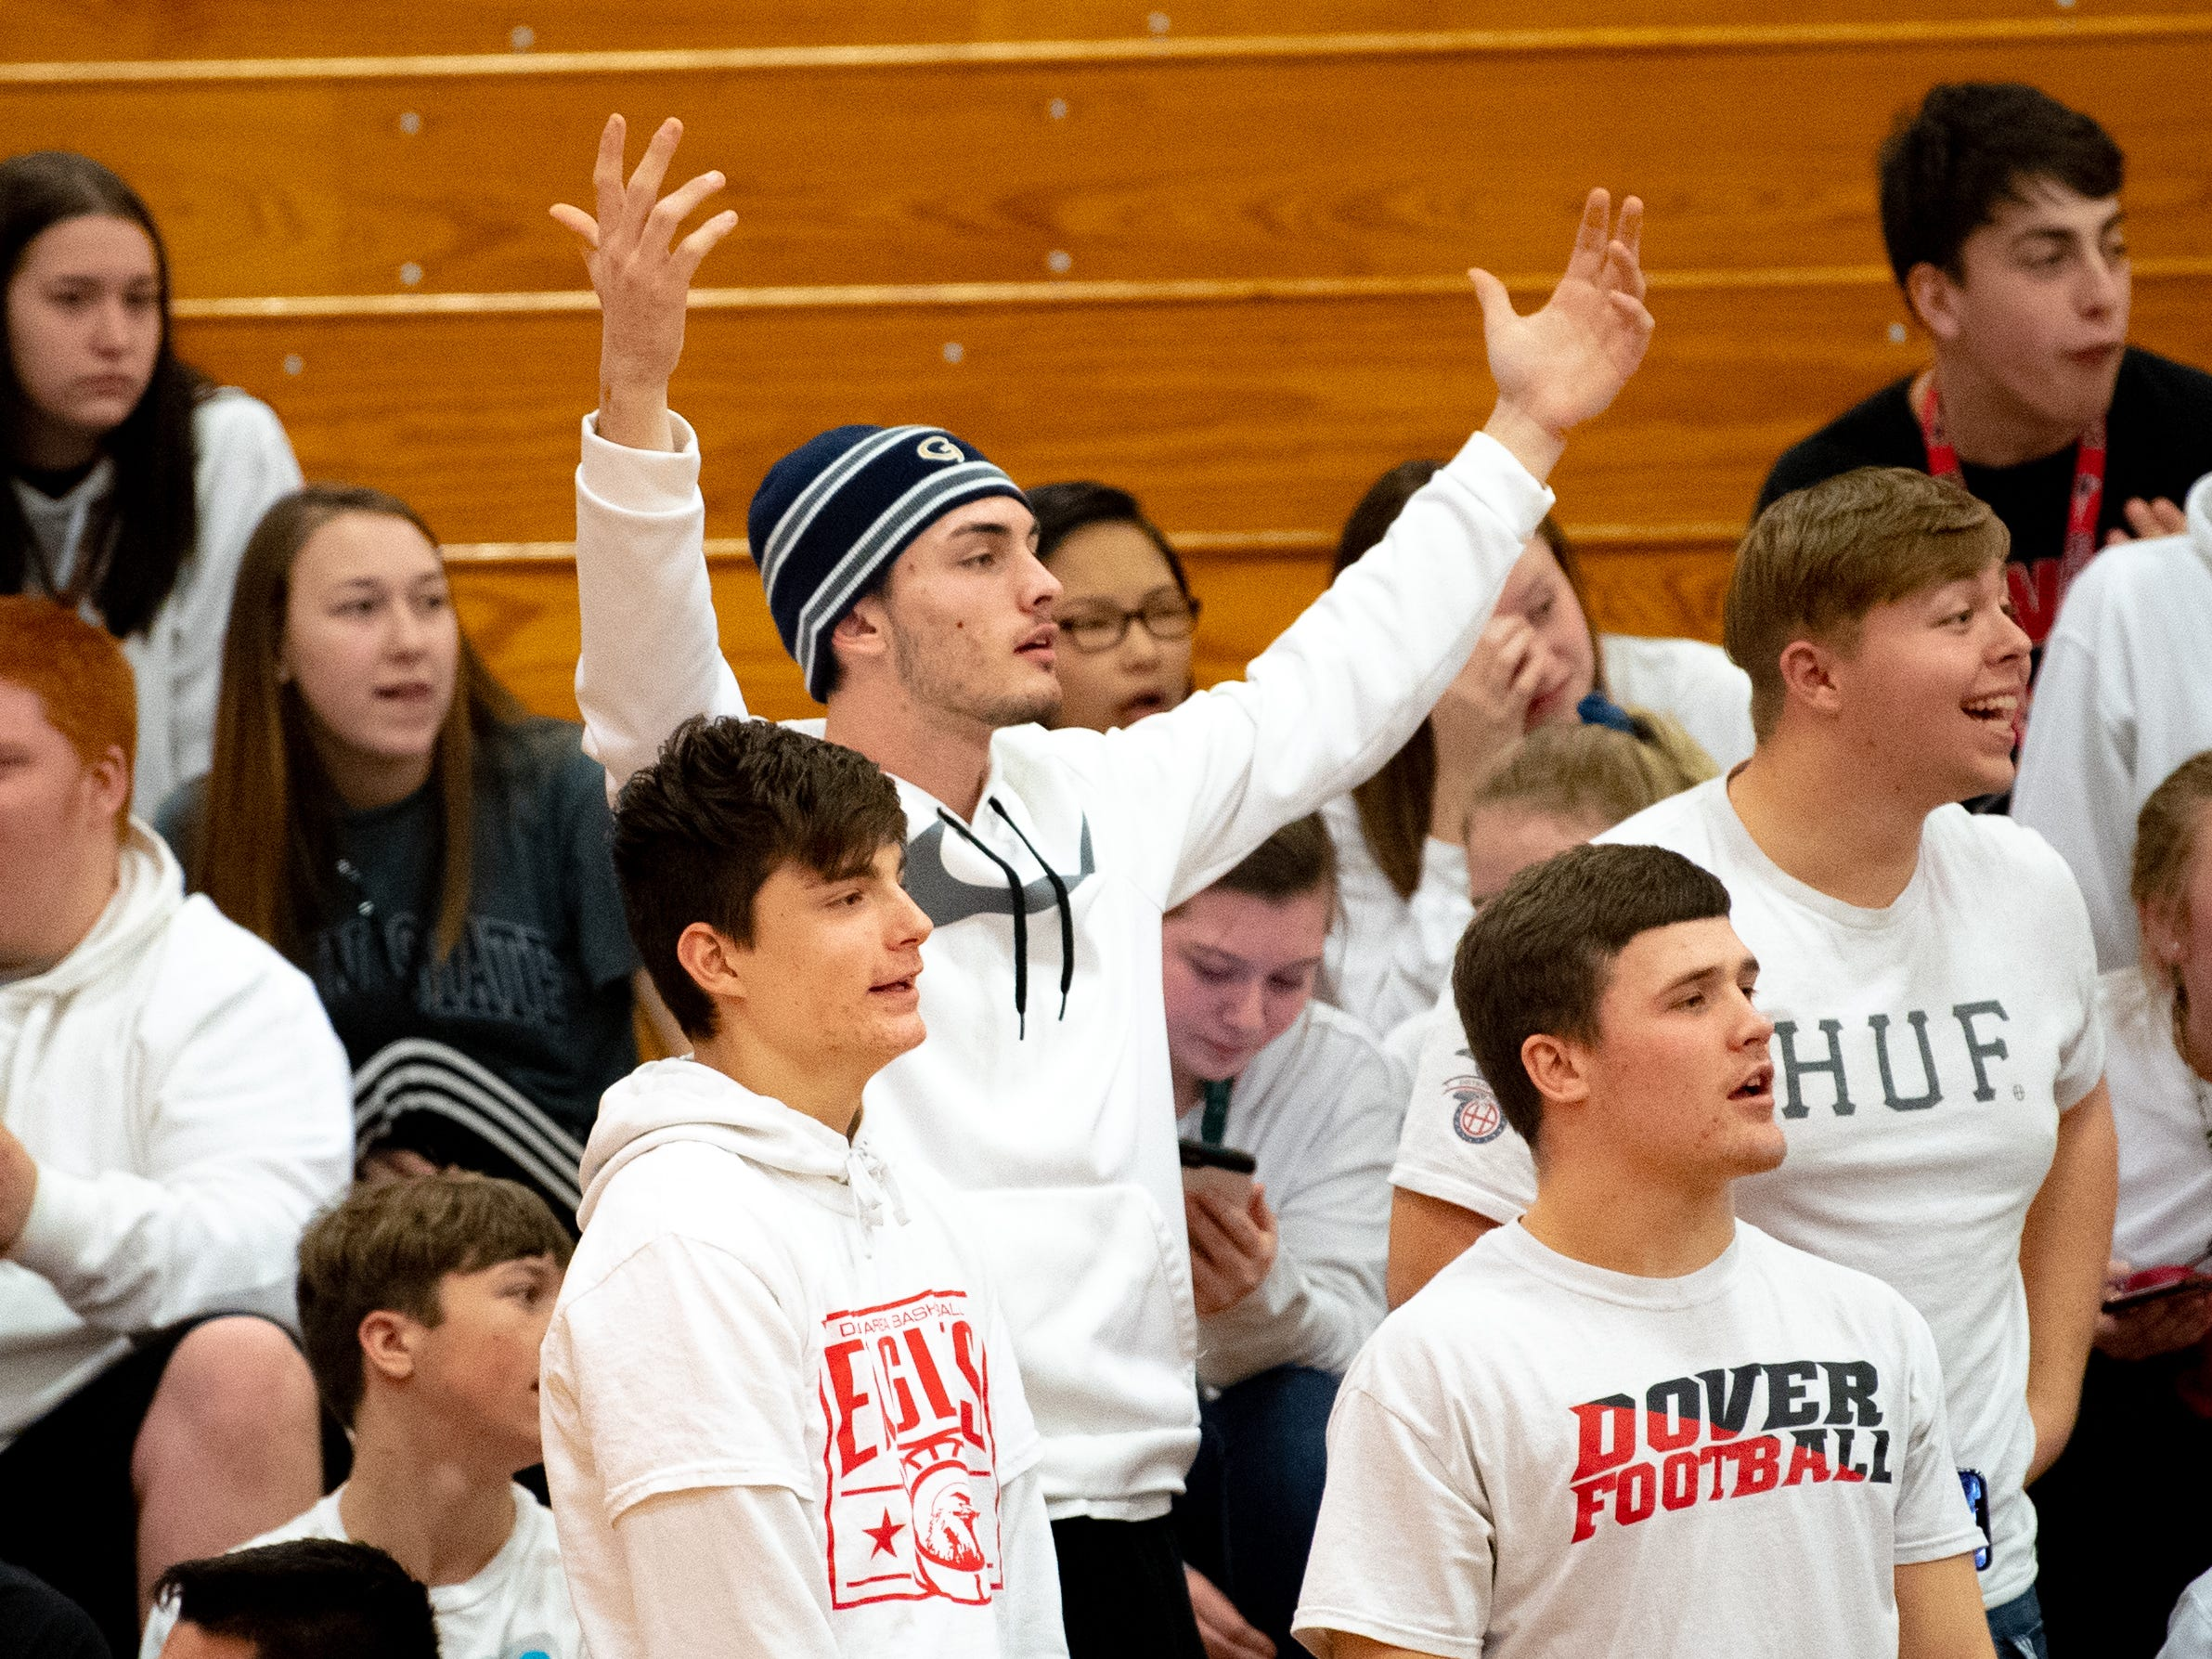 Dover's student section isn't happy with the travel call during the boys' basketball game between Dover and Susquehannock at Dover Area High School, December 18, 2018. The Eagles defeated the Warriors 69-61.